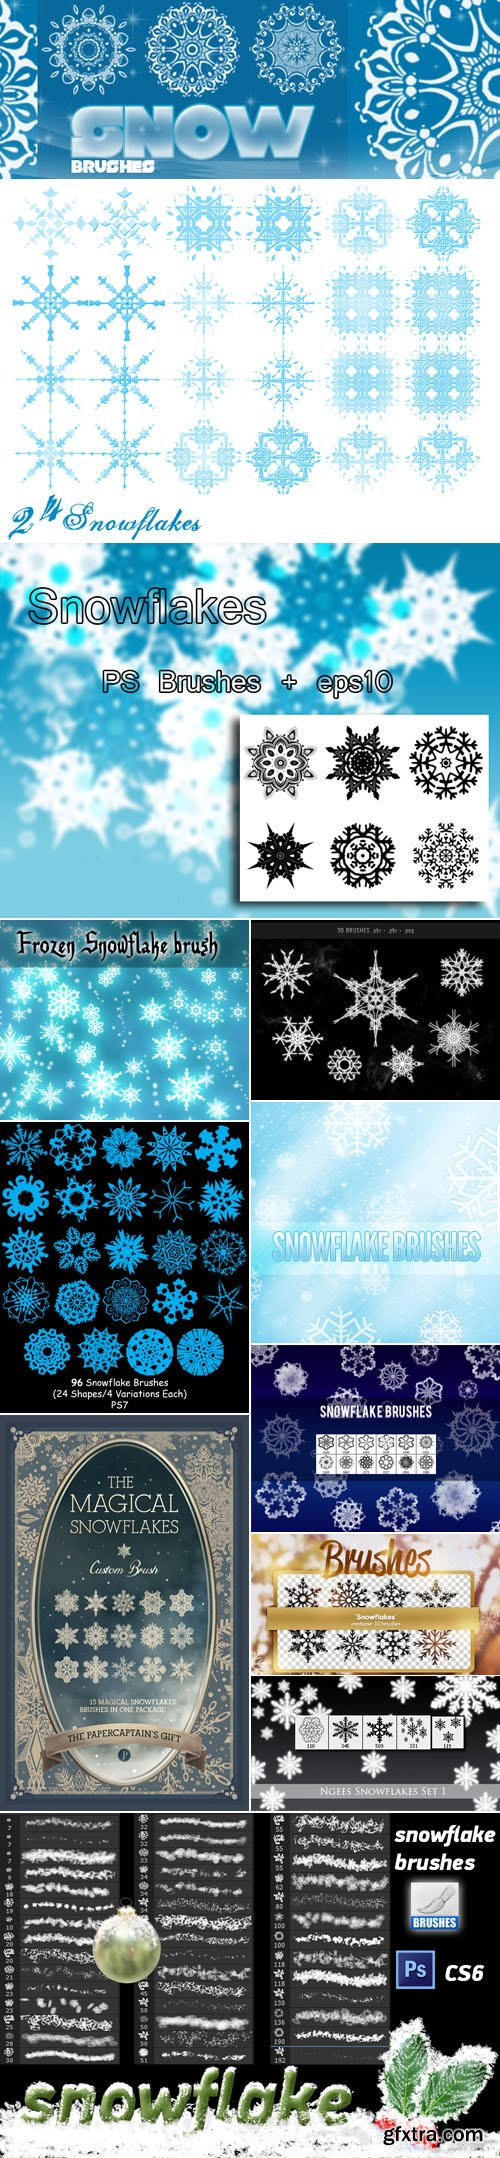 Snowflakes Brushes for Photoshop Pack 3